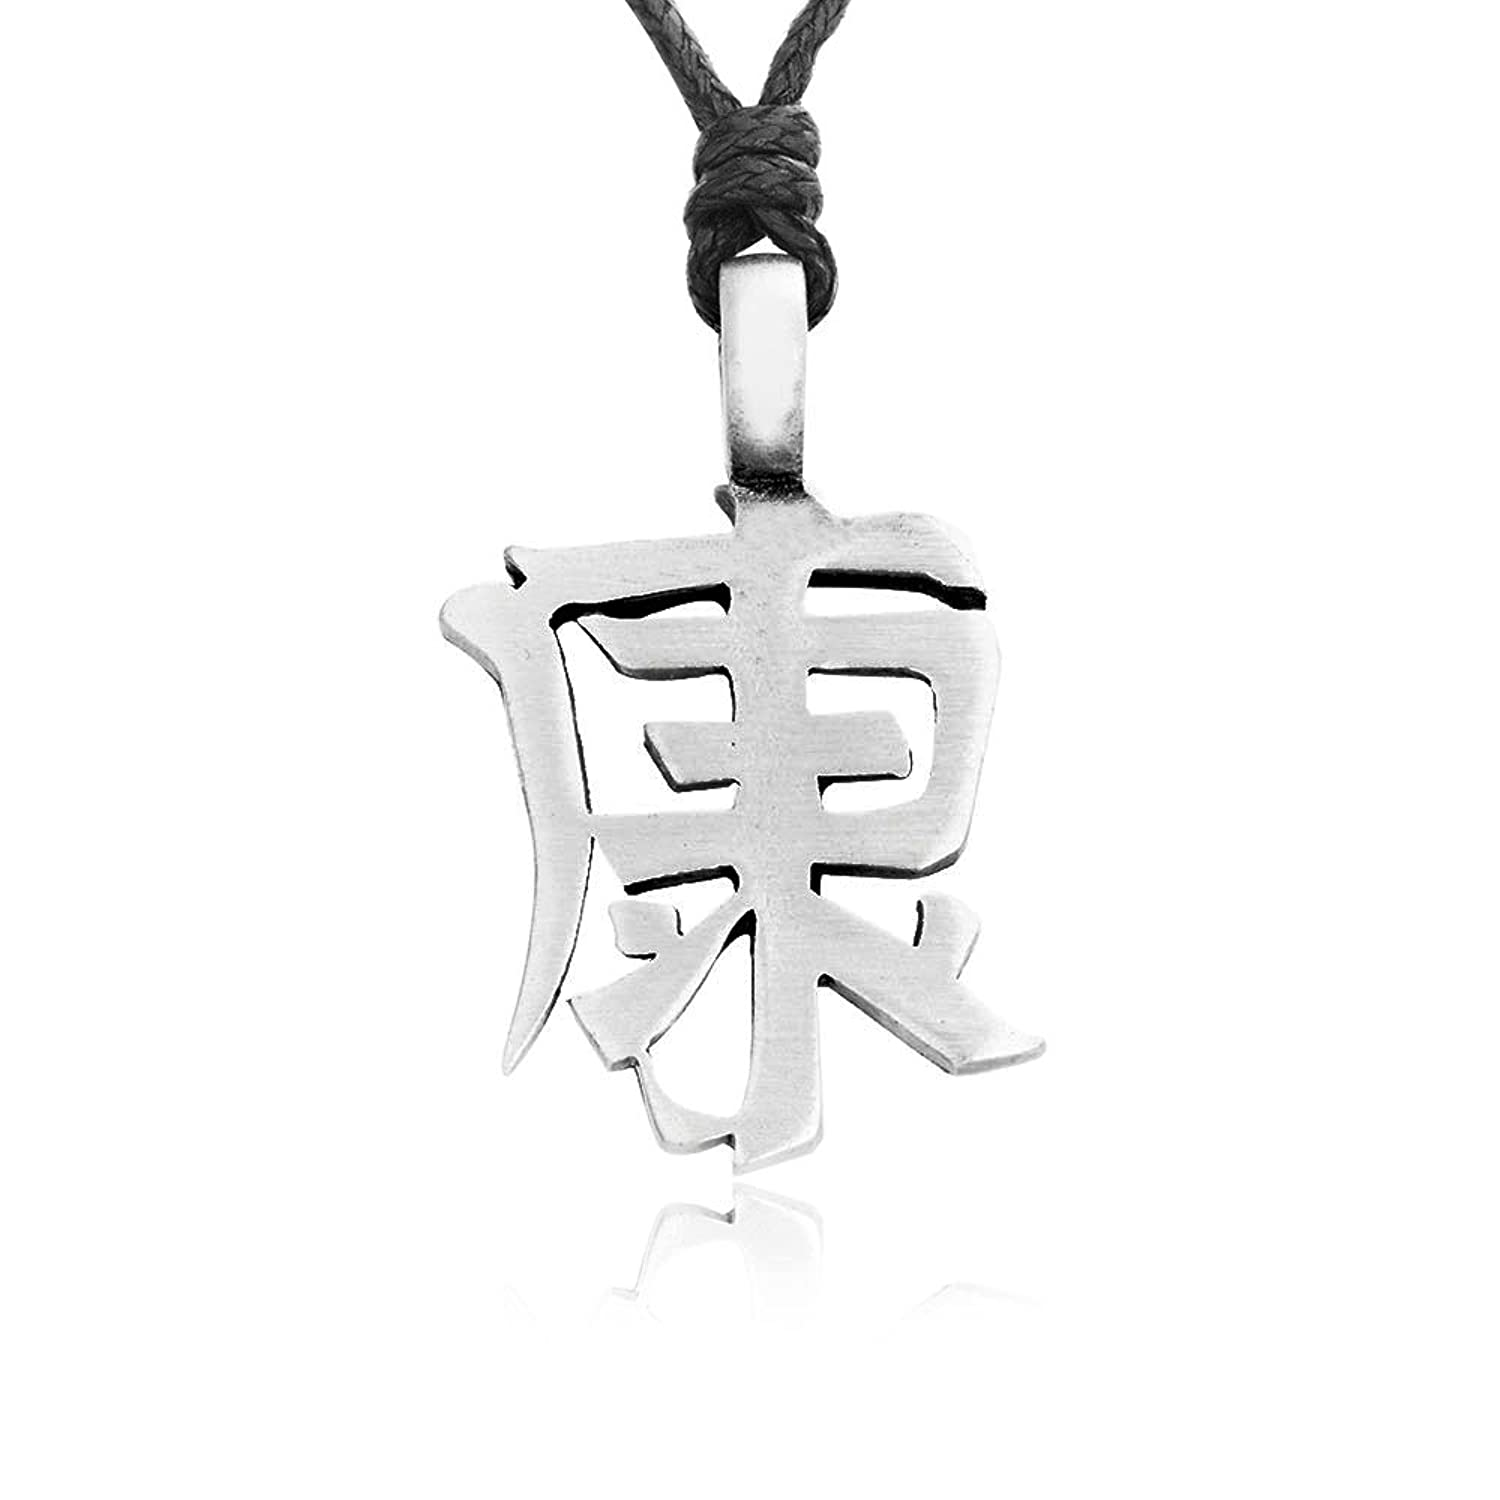 Llords jewellery chinese character necklace pendant good health llords jewellery chinese character necklace pendant good health symbol fine pewter jewelry amazon jewellery biocorpaavc Gallery